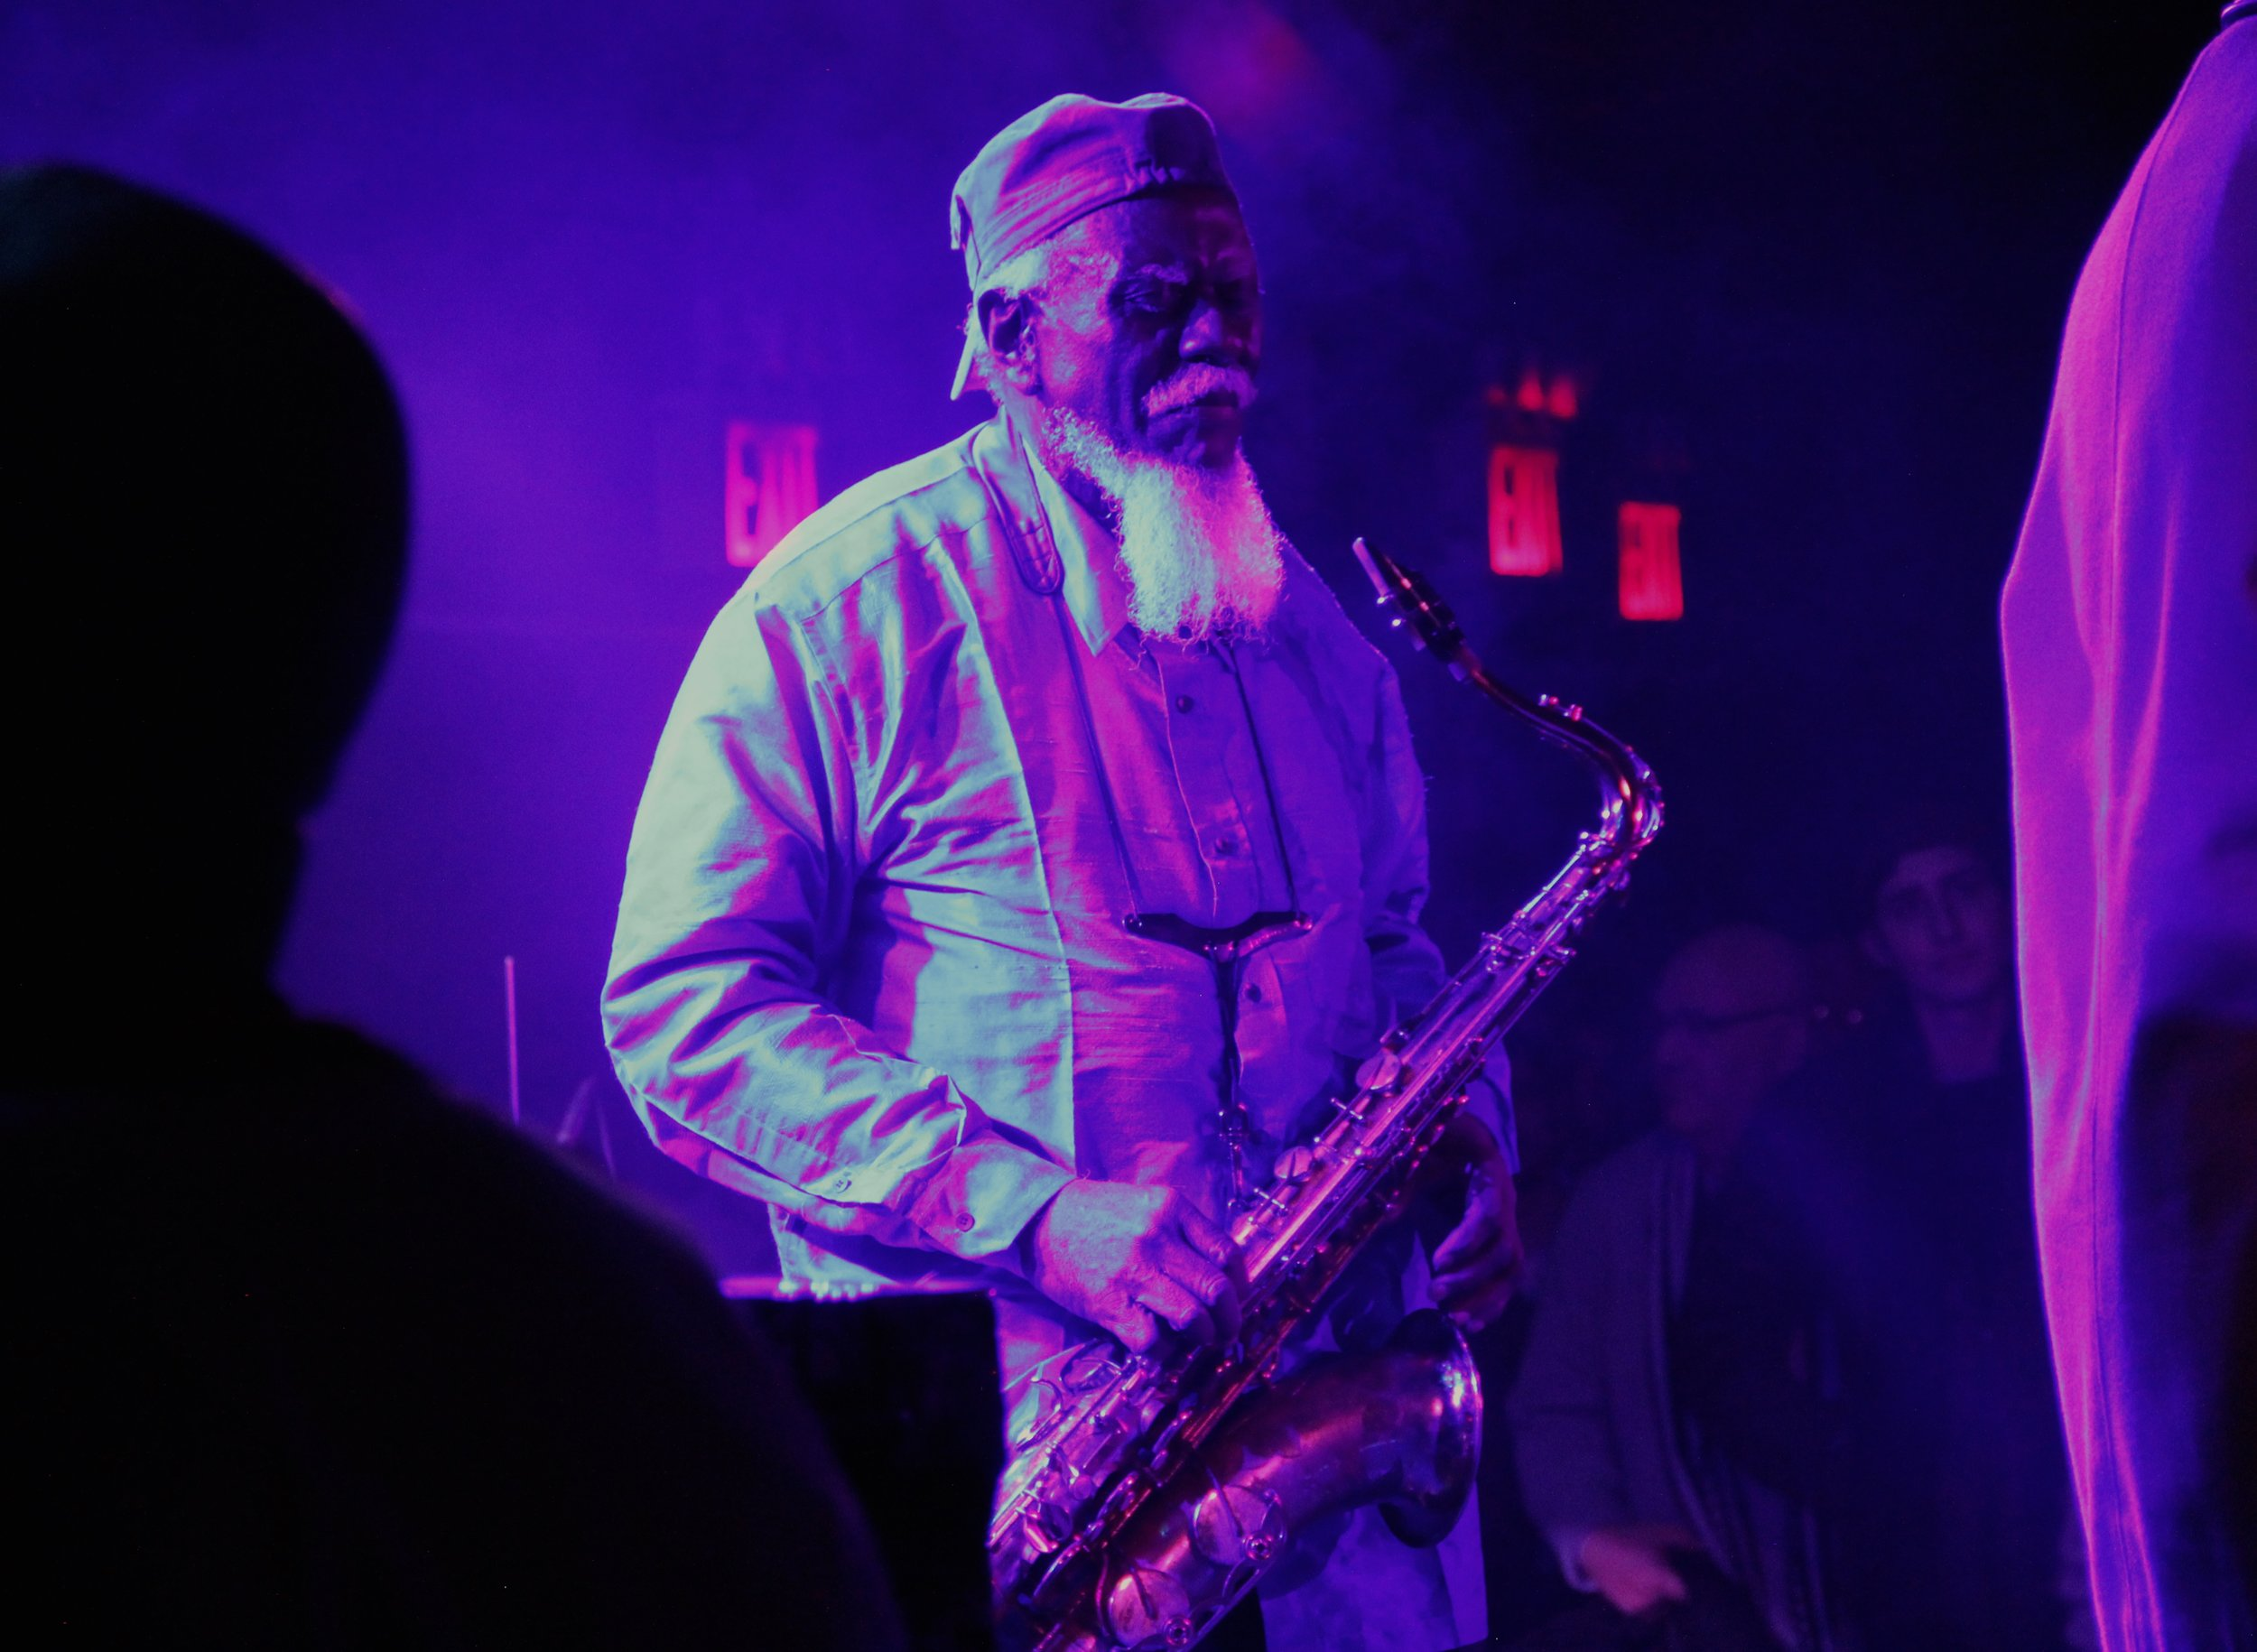 Photo by Eric Welles-Nystrom. Winter Jazz Fest at (Le) Poisson Rouge, New York City (January 5, 2017)